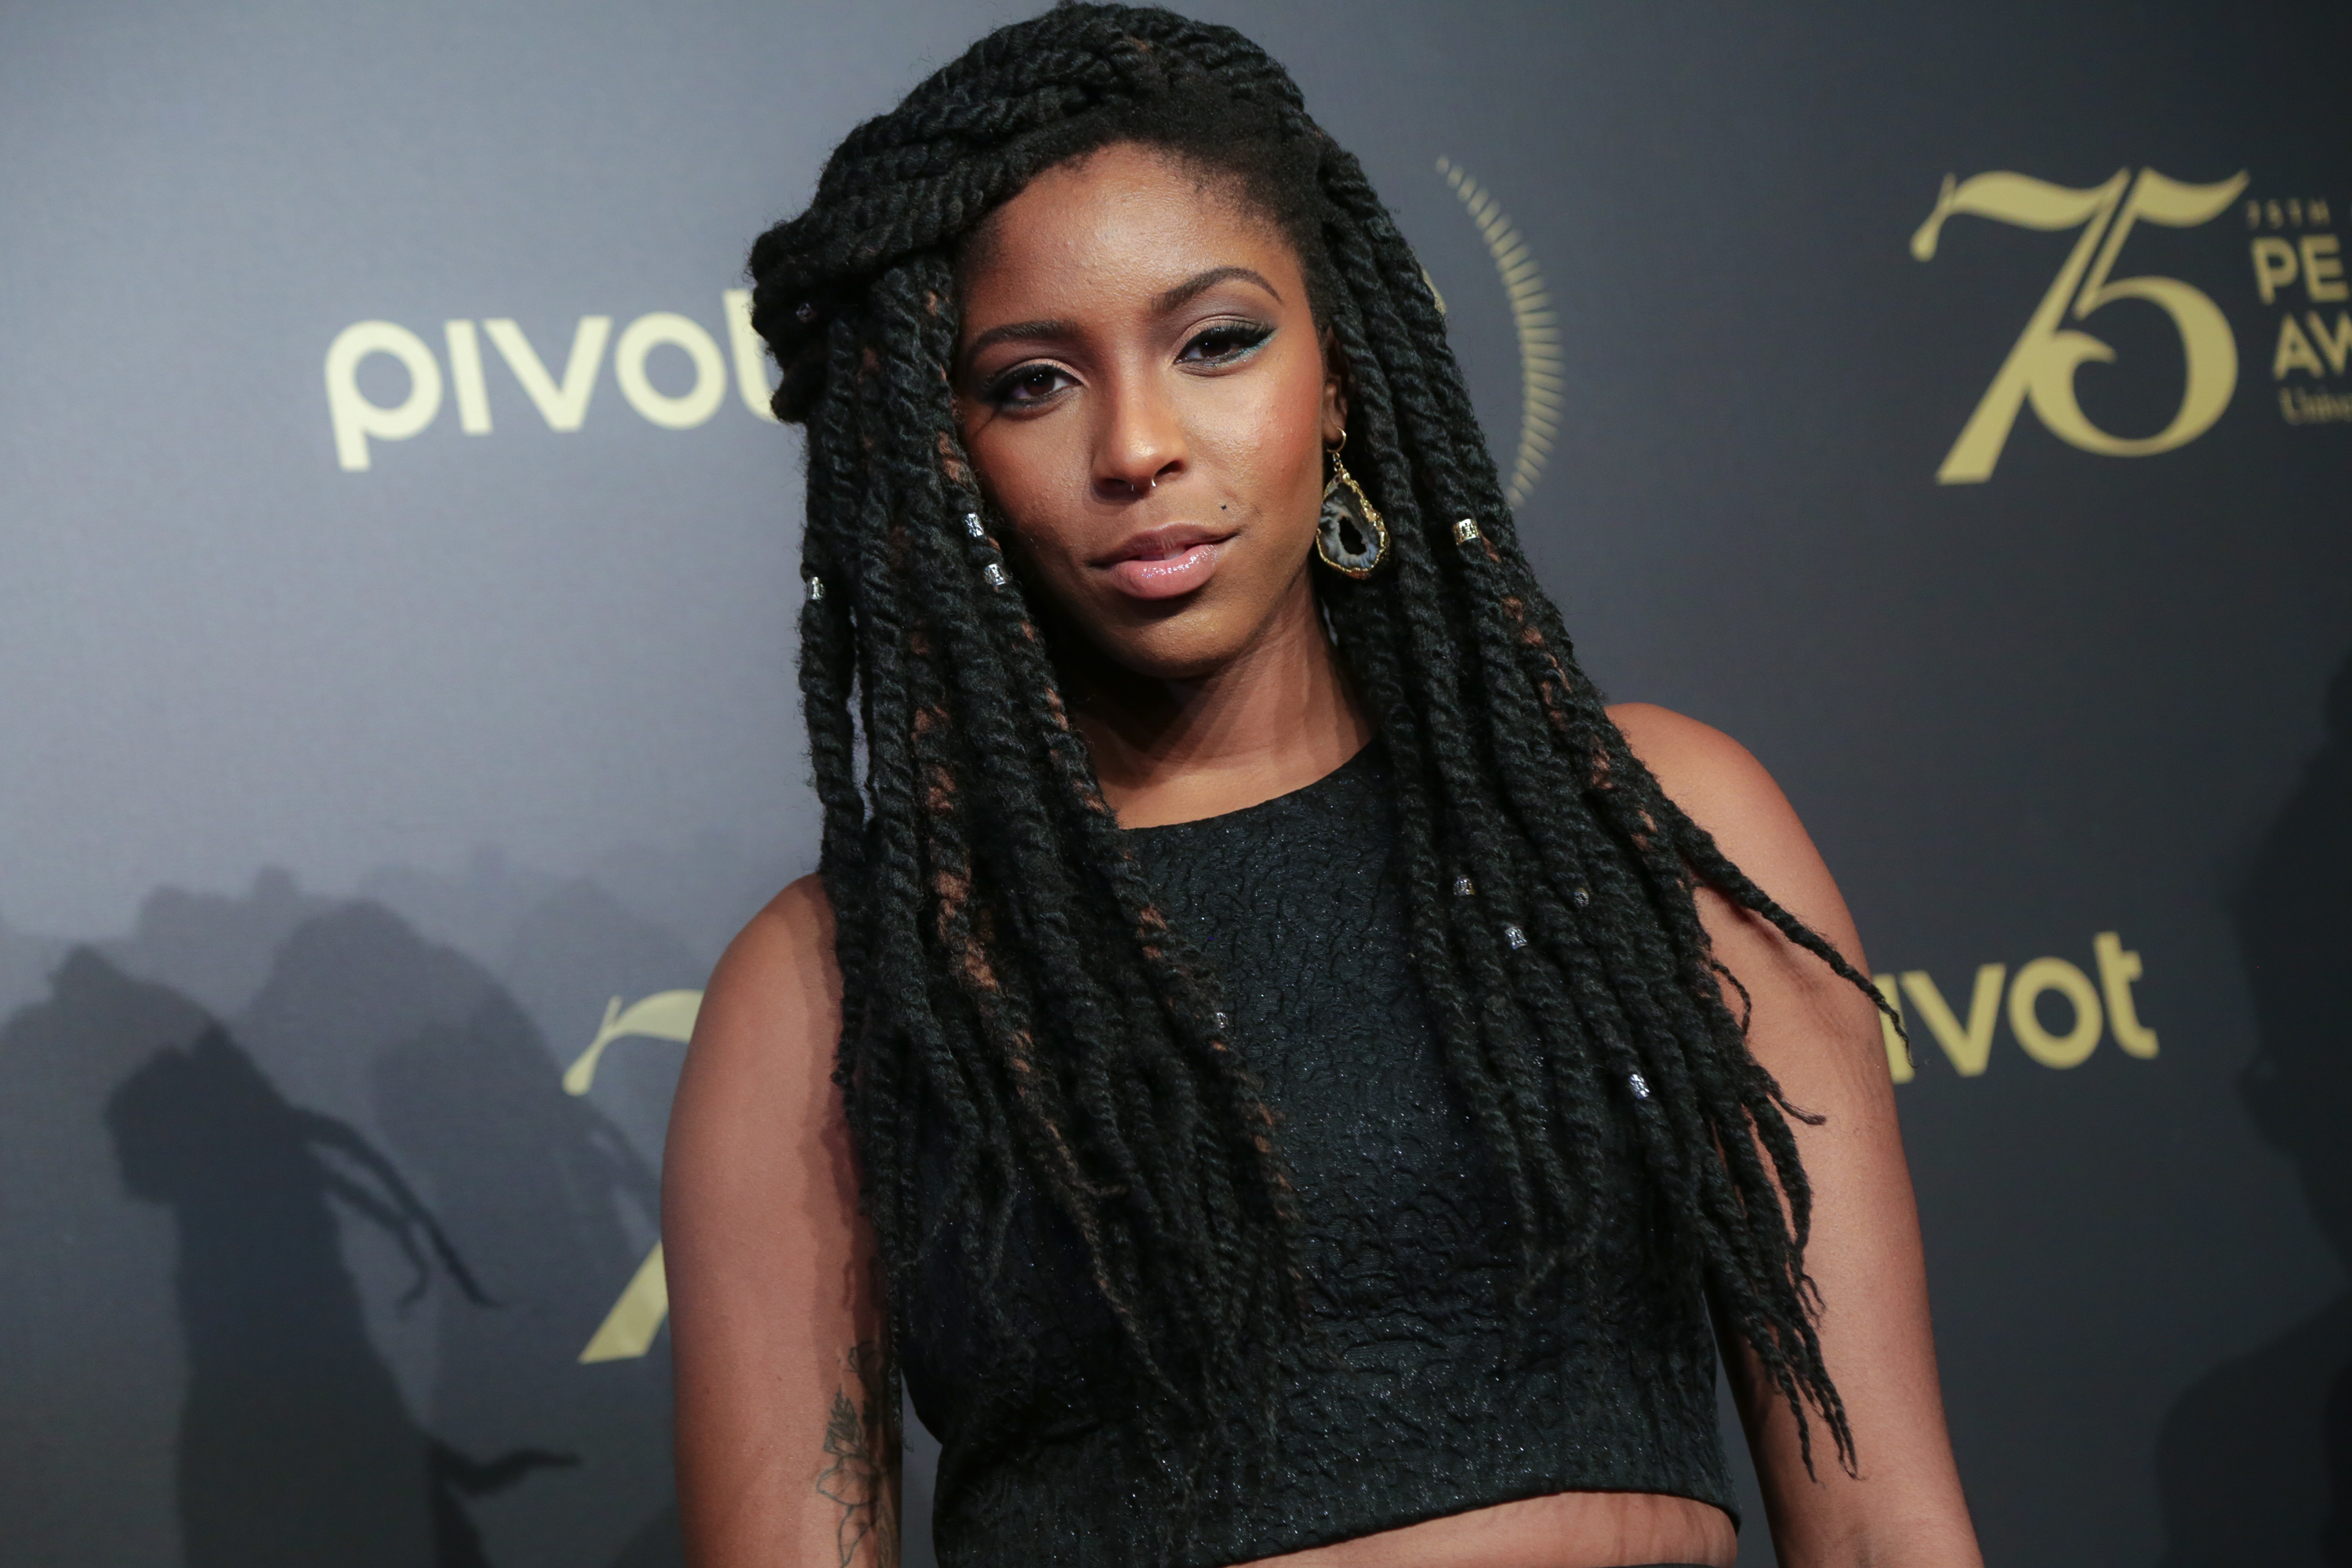 Jessica Williams and Salma Hayek's Sundance conversation shows just how complicated intersectional feminism can be